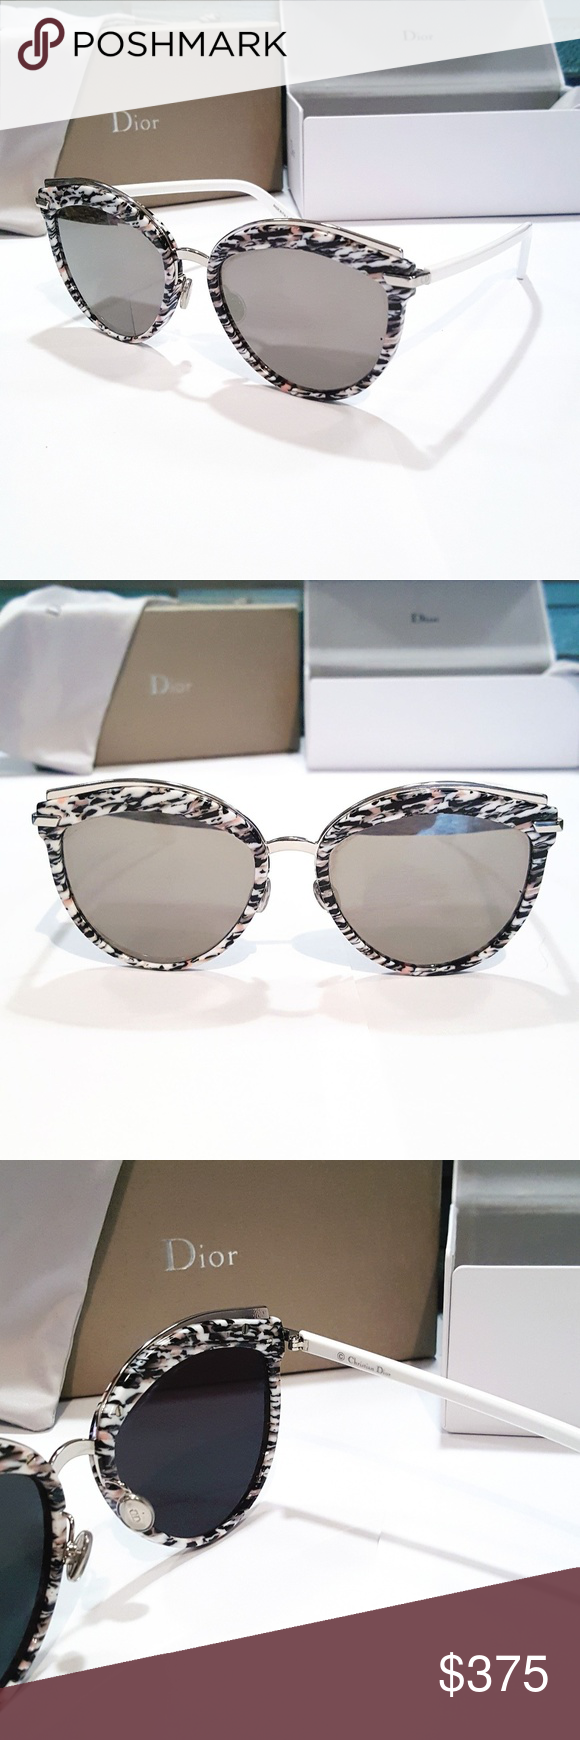 54307b9bbd Dior Offset 2 Mirrored Cat Eye Sunglasses Brand New Dior Offset 2S W6Q 0T  Sunglasses. These cute sunglasses feature a pink and black tweed pattern  cat eye ...